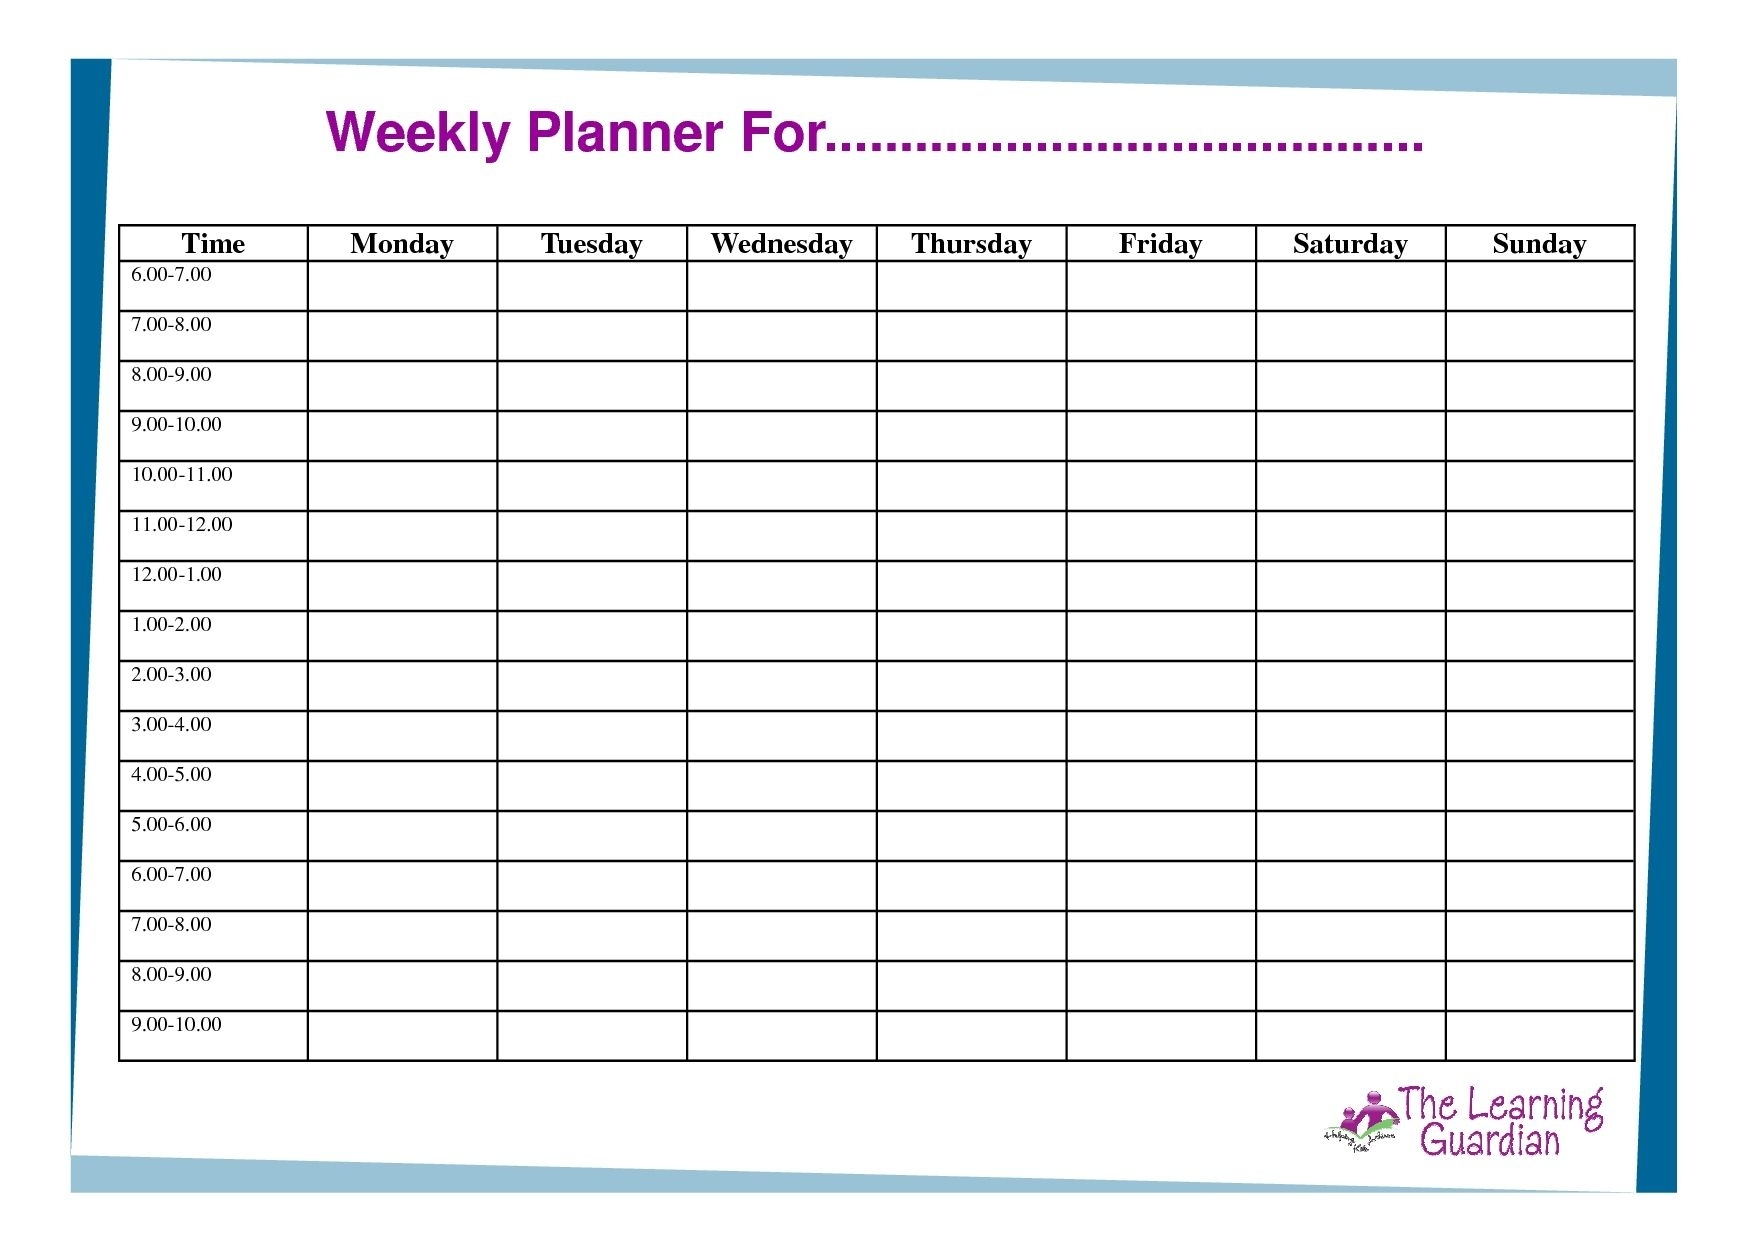 Free Printable Weekly Calendar Templates Weekly Planner For Time for Calendar Day Planner Templates Free